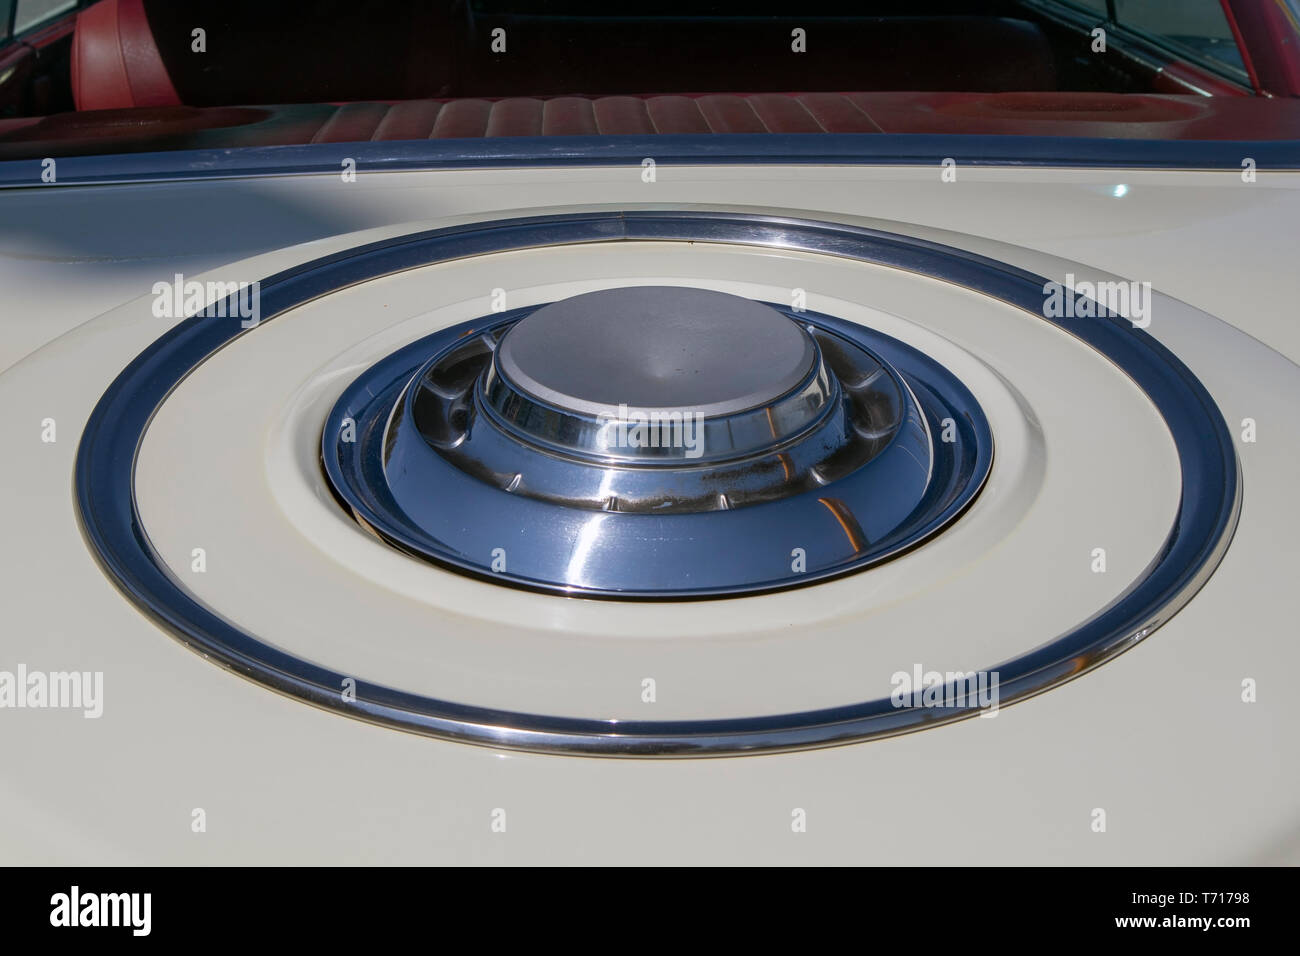 1961 Chrysler Windsor 4 D HT trunk detail - Stock Image